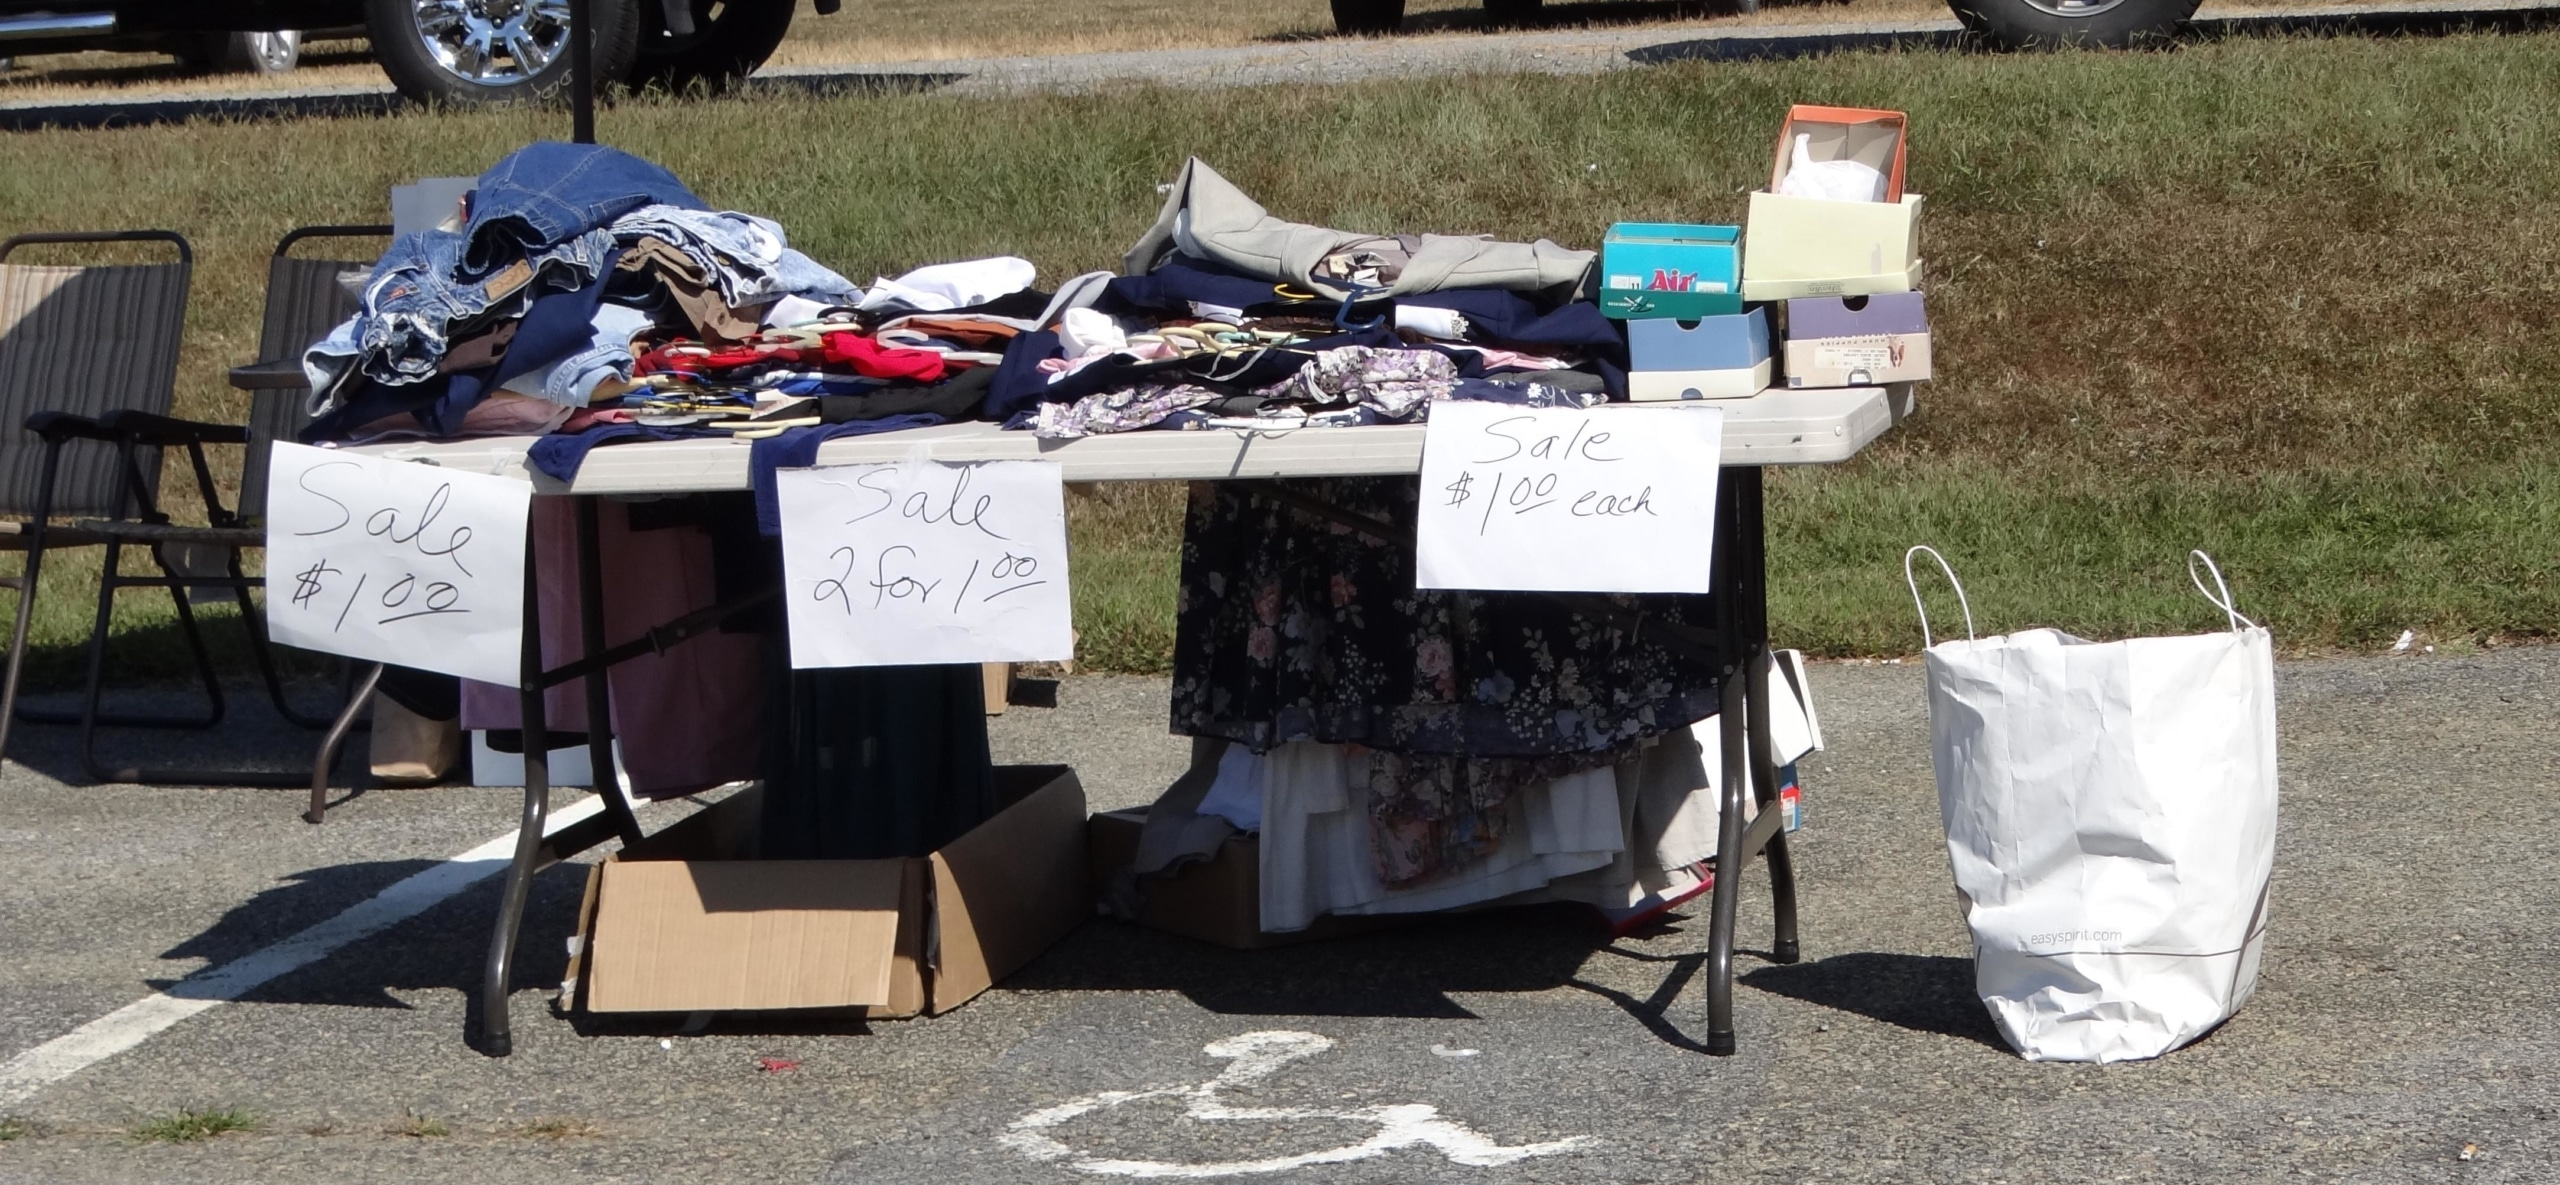 table at a yard sale